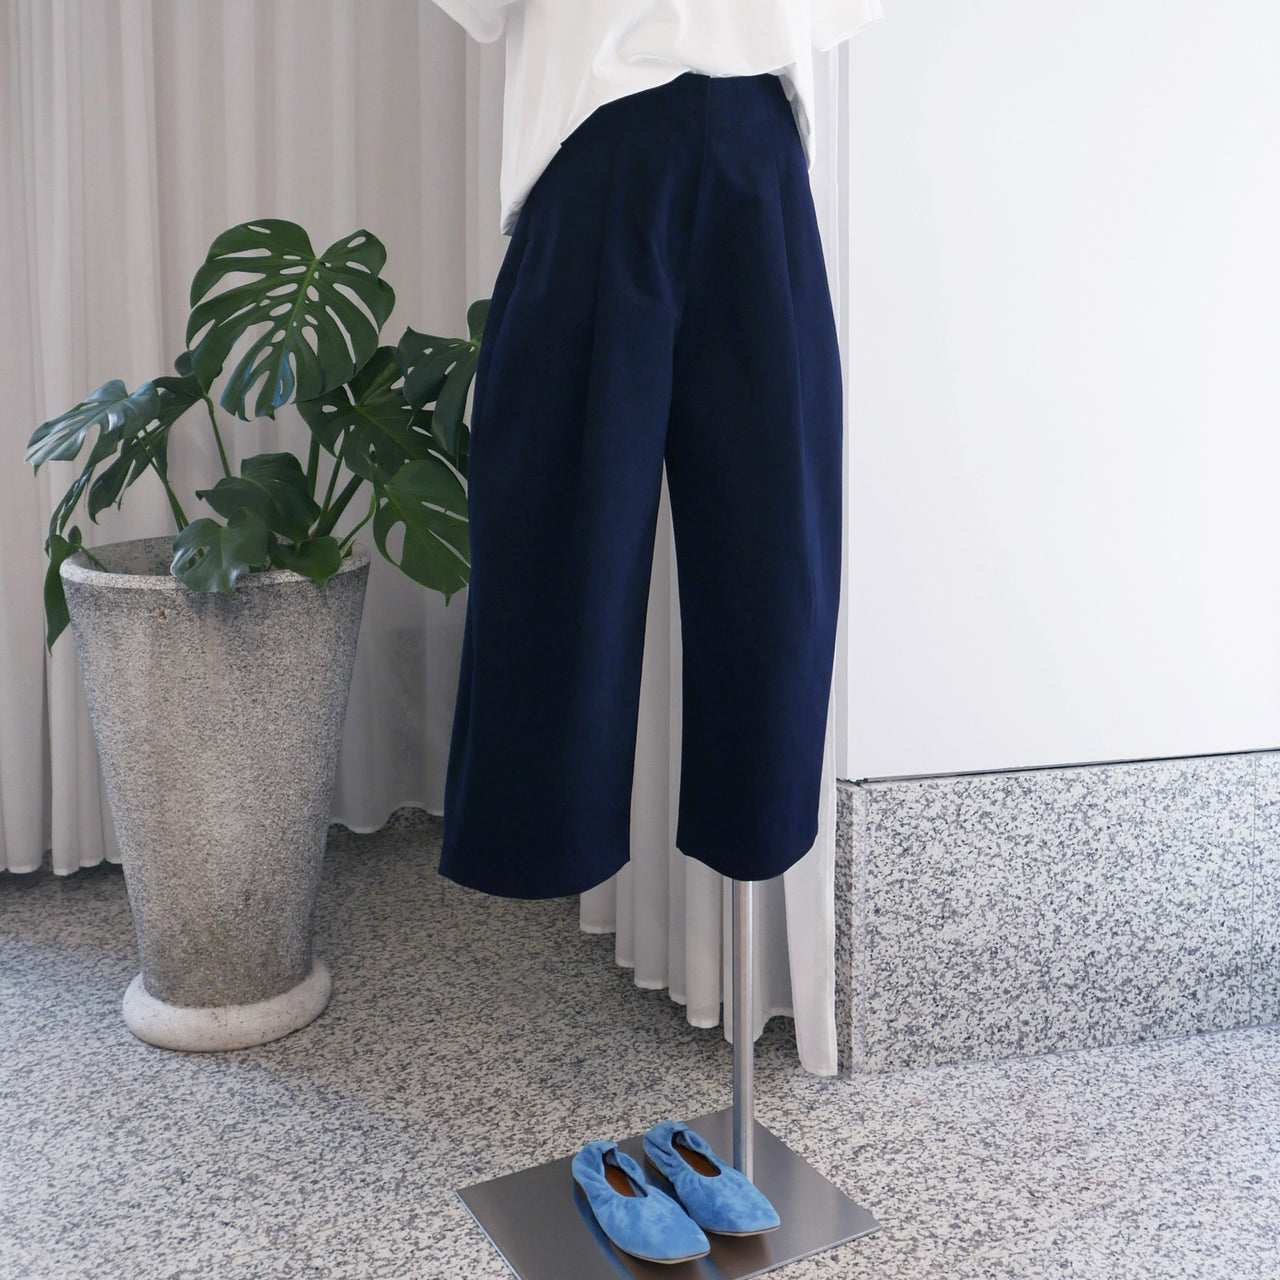 Dordoni Volume Pant in Cotton Dark Navy